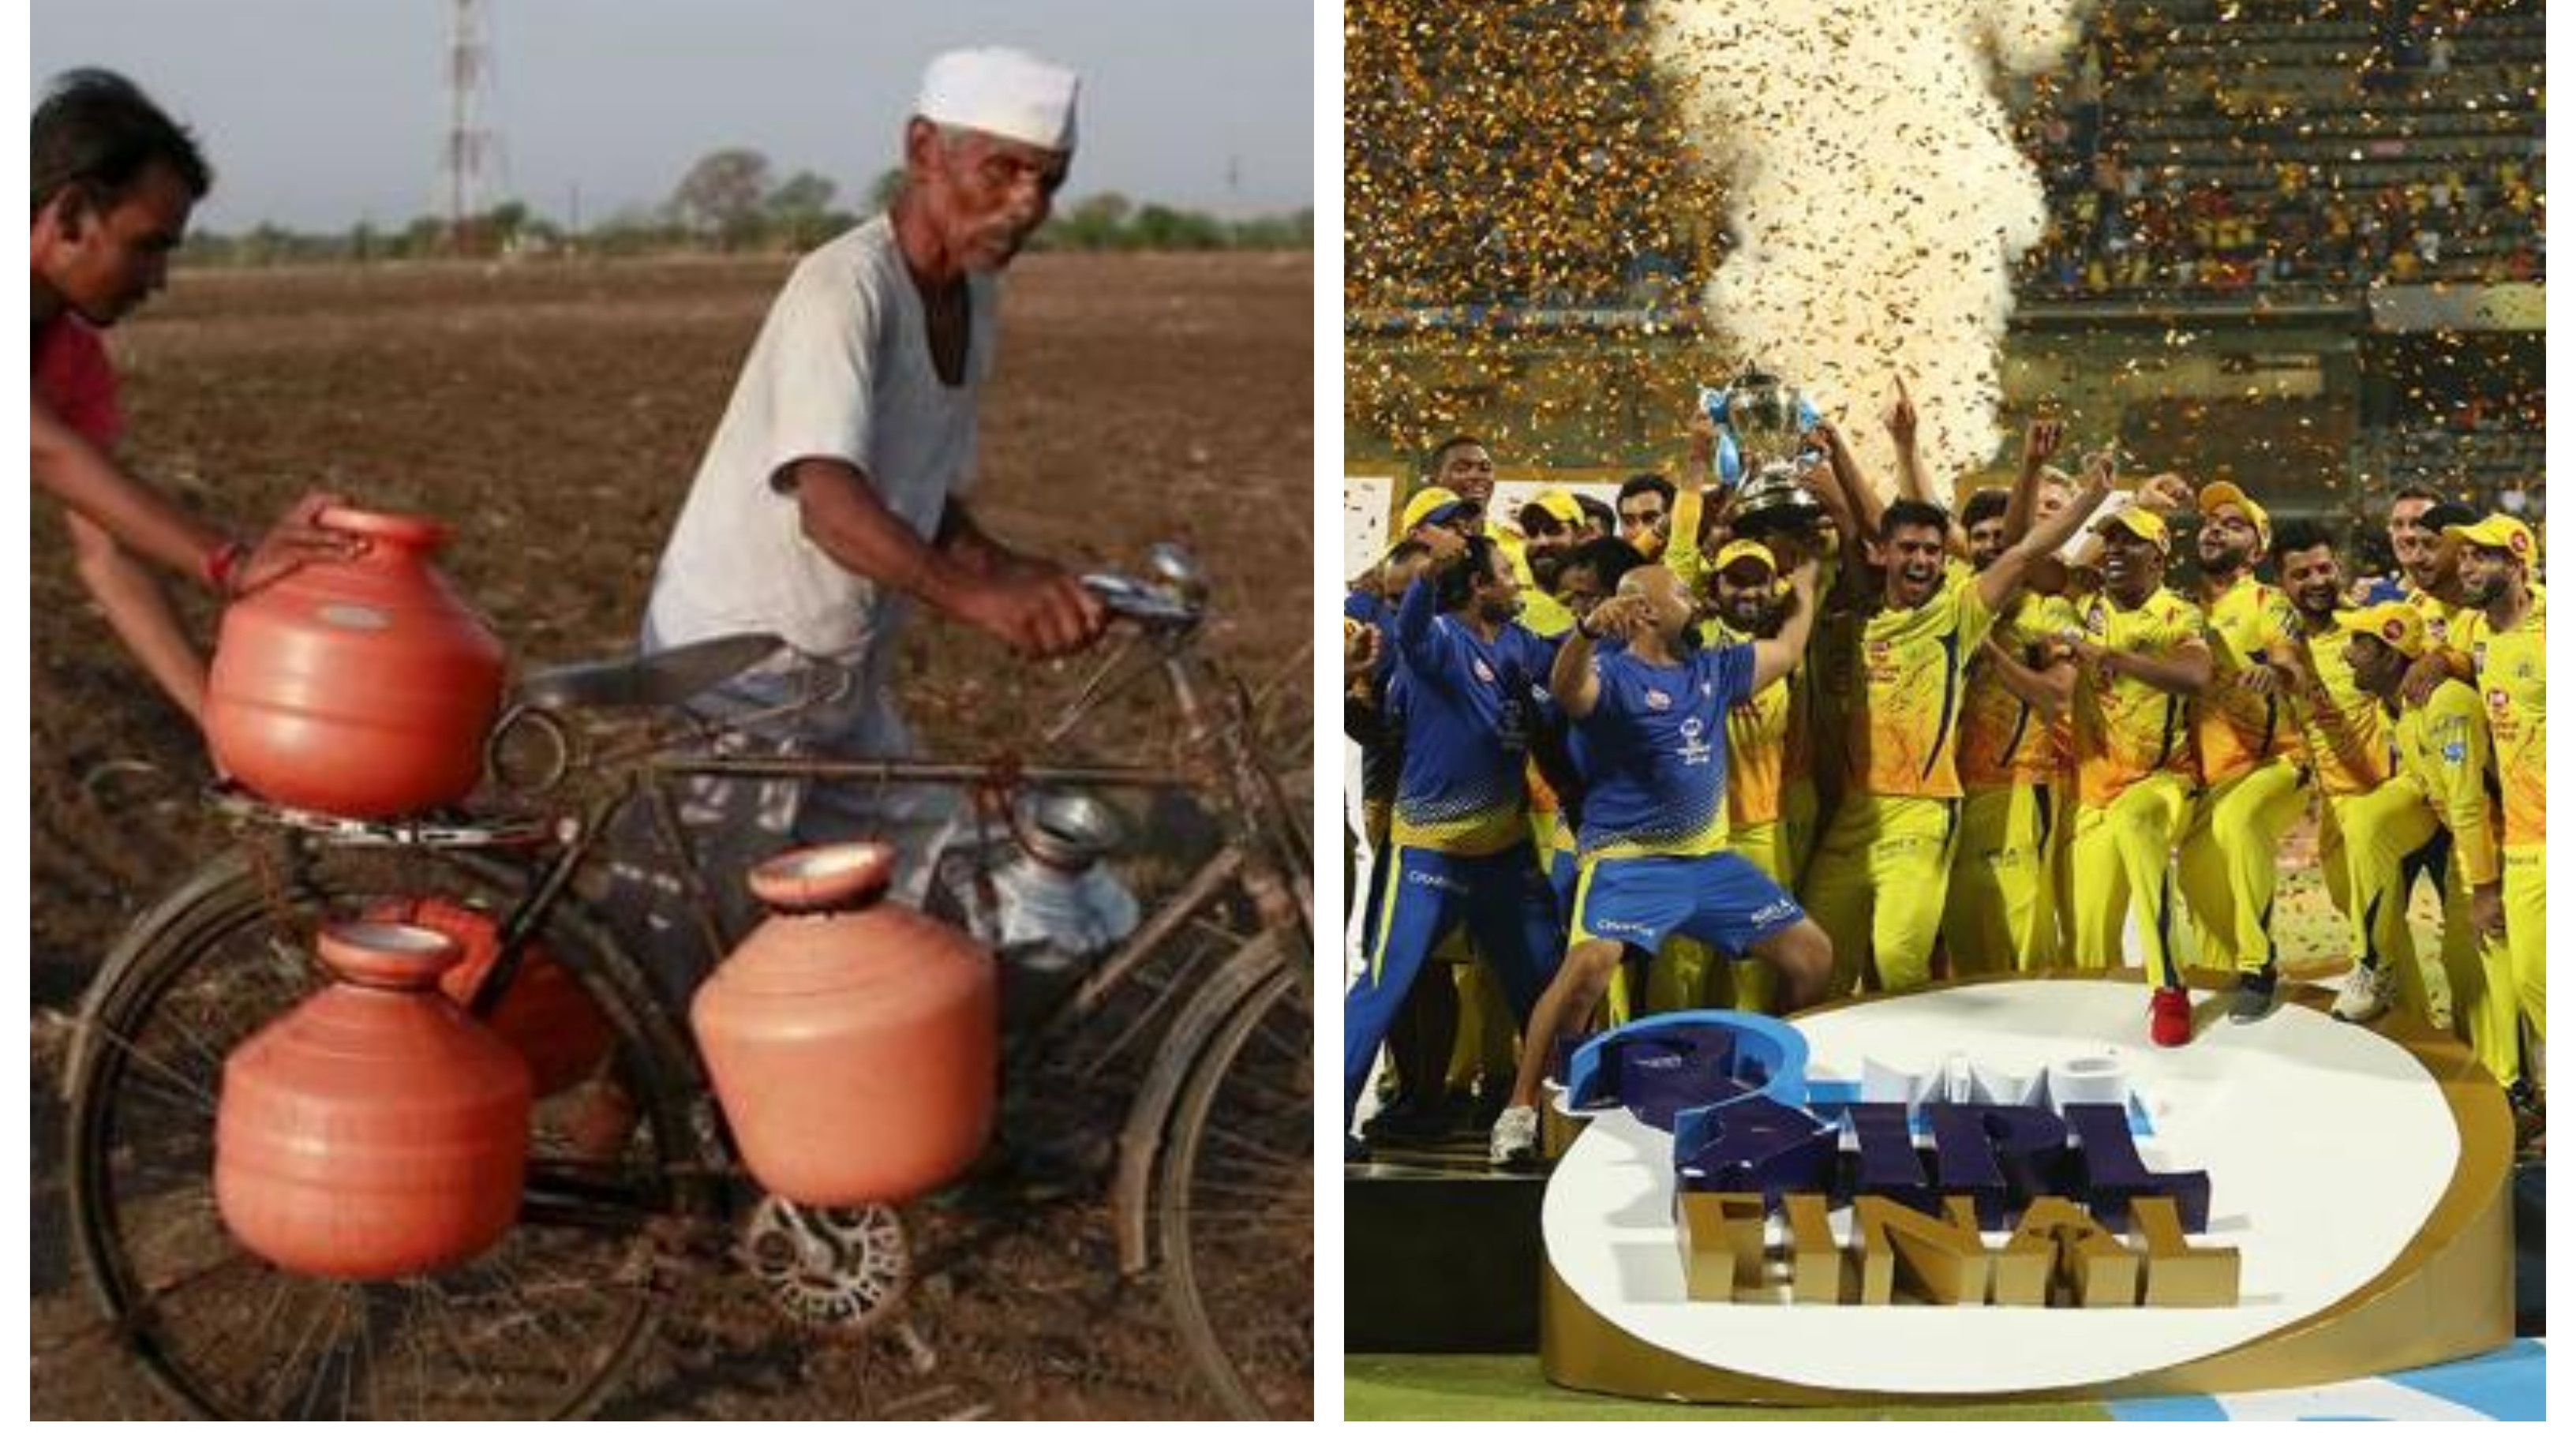 Drought might put IPL matches in jeopardy this season